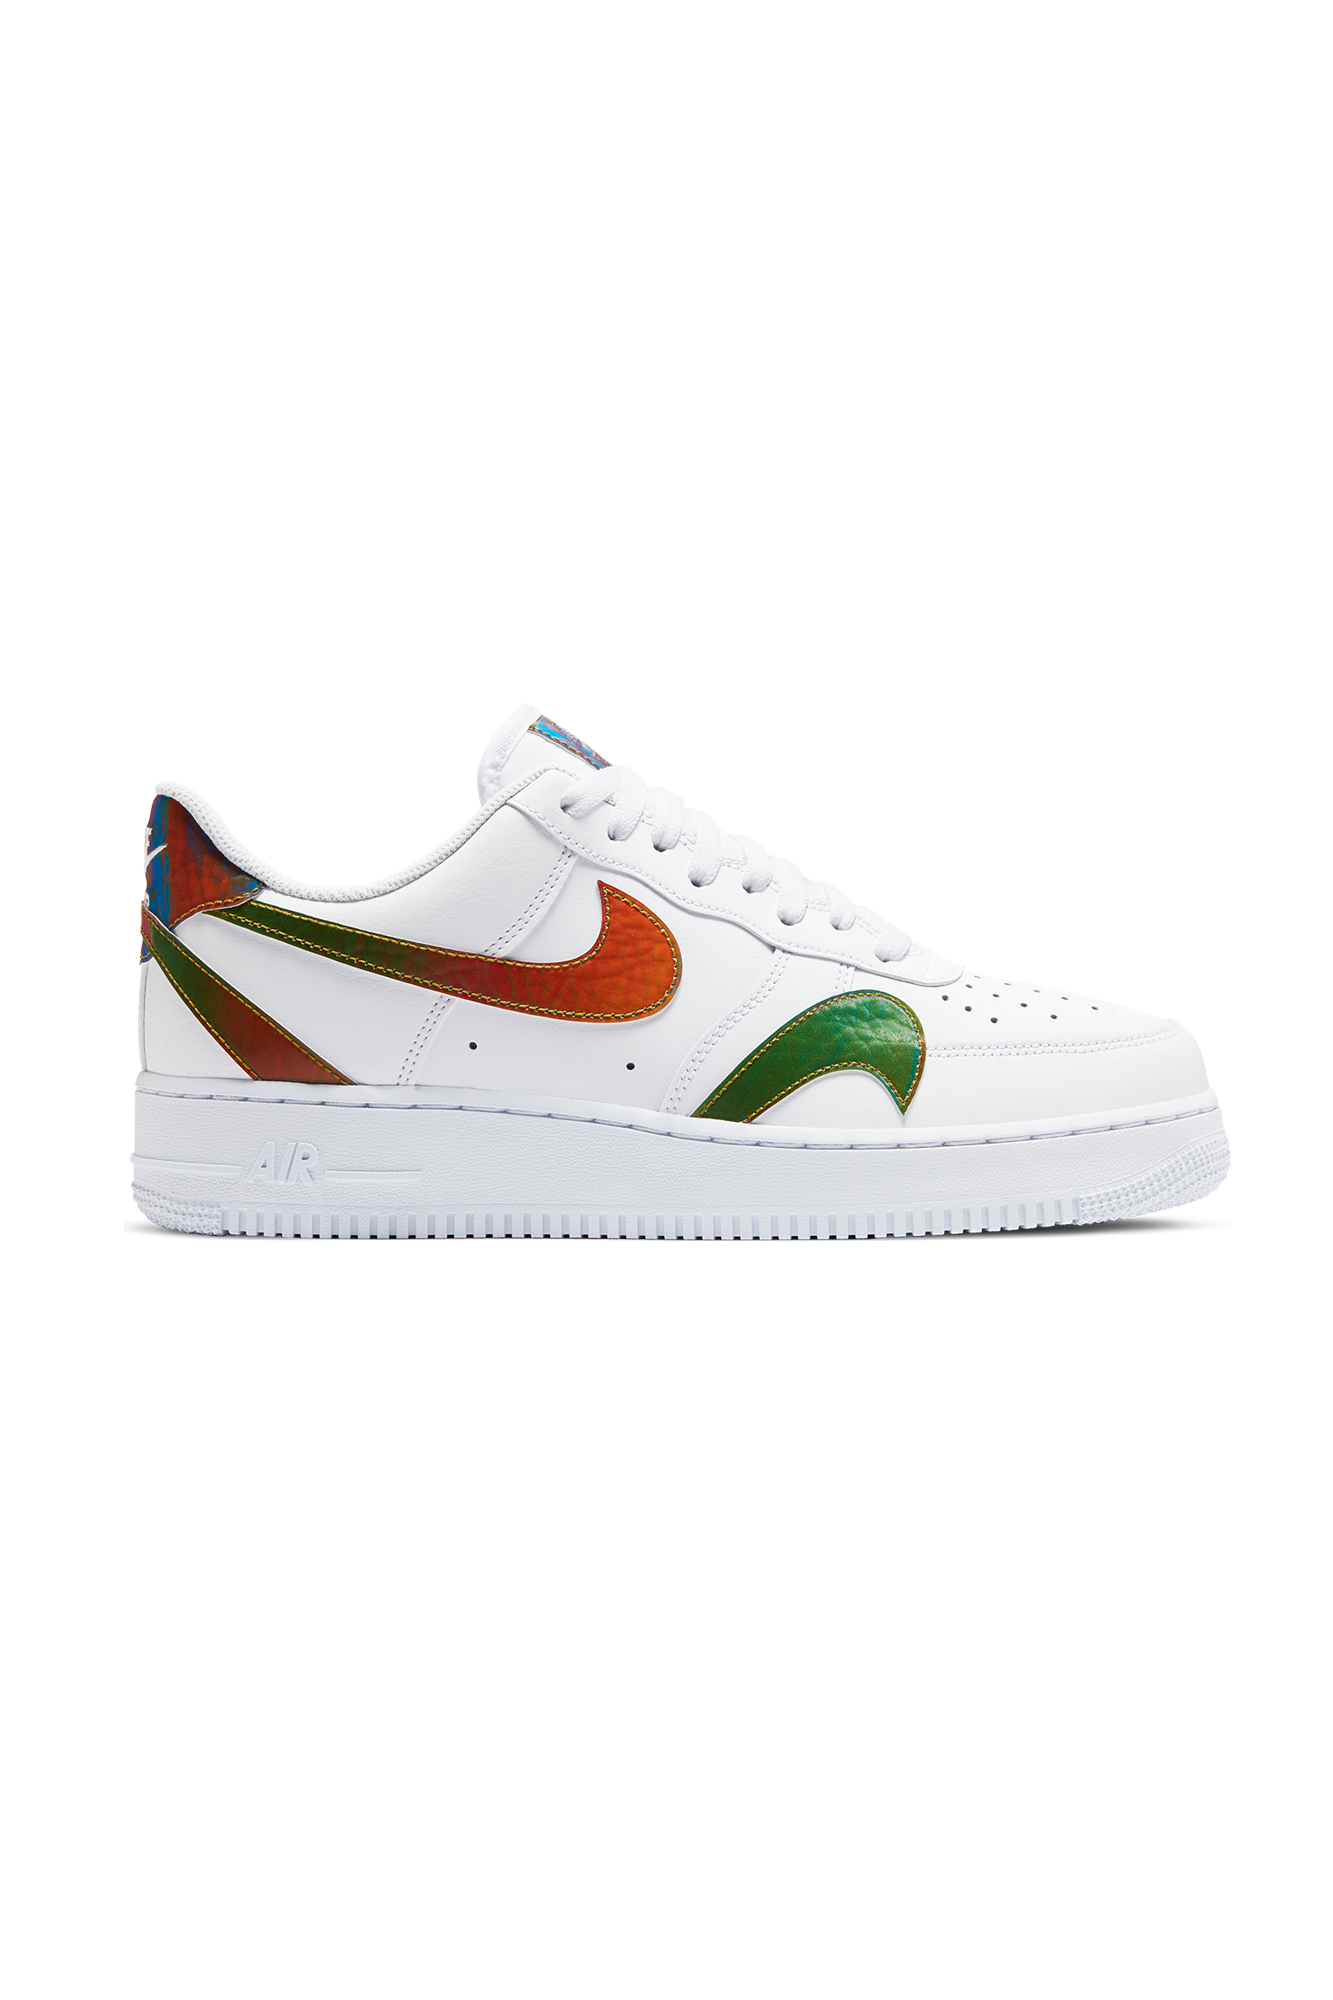 Nike Sneakers Air Force 1 '07 LV8 Bianco CK7214-#000#101#7 - One Block Down